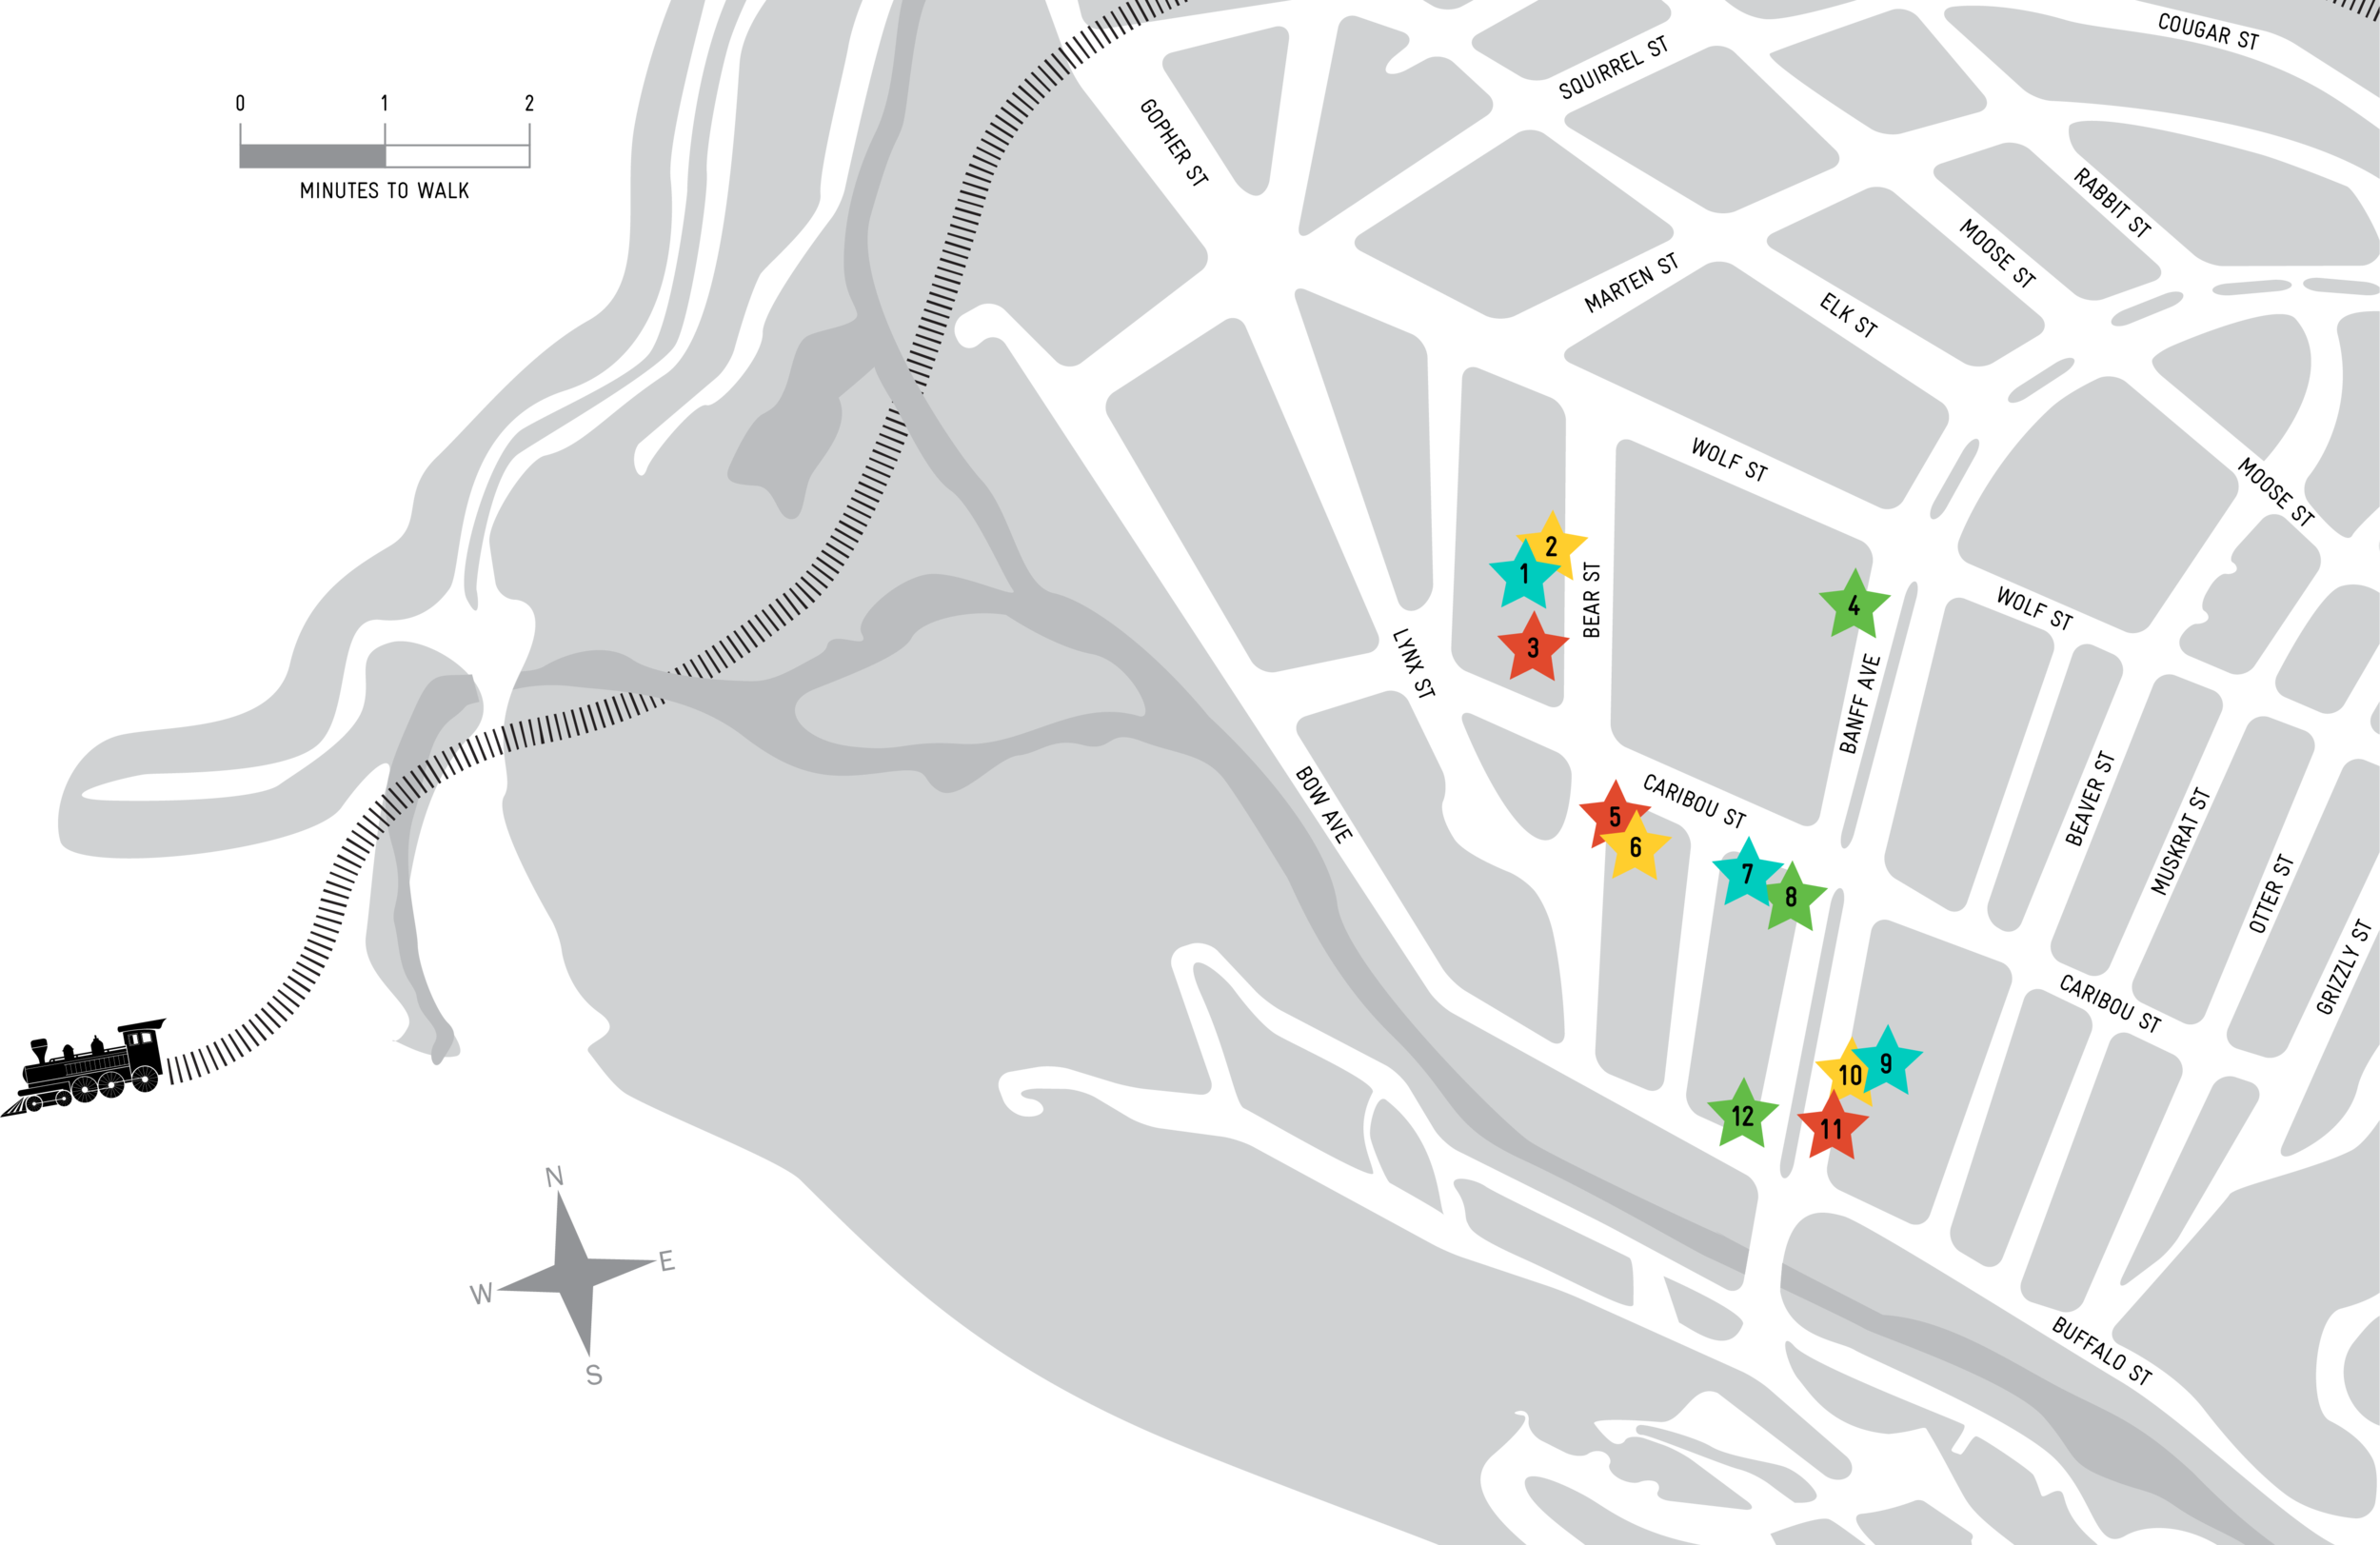 BanffHospitalityCollective-Venue-Map no legend.png